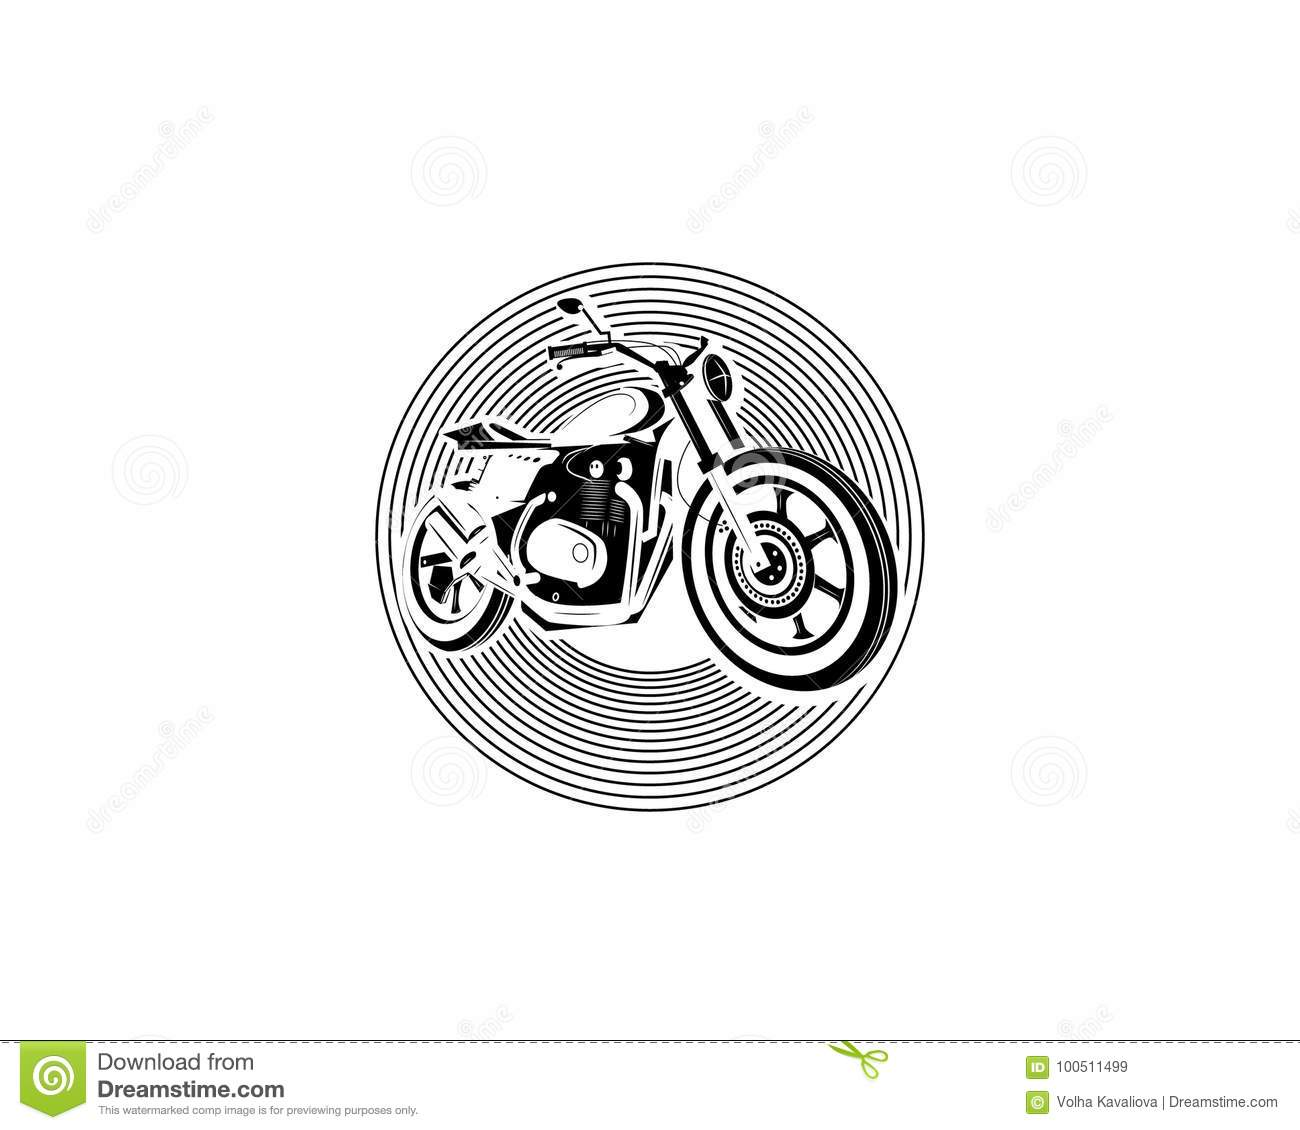 Moto Bike Icon Cafe Racer Stock Vector Illustration Of Drawn